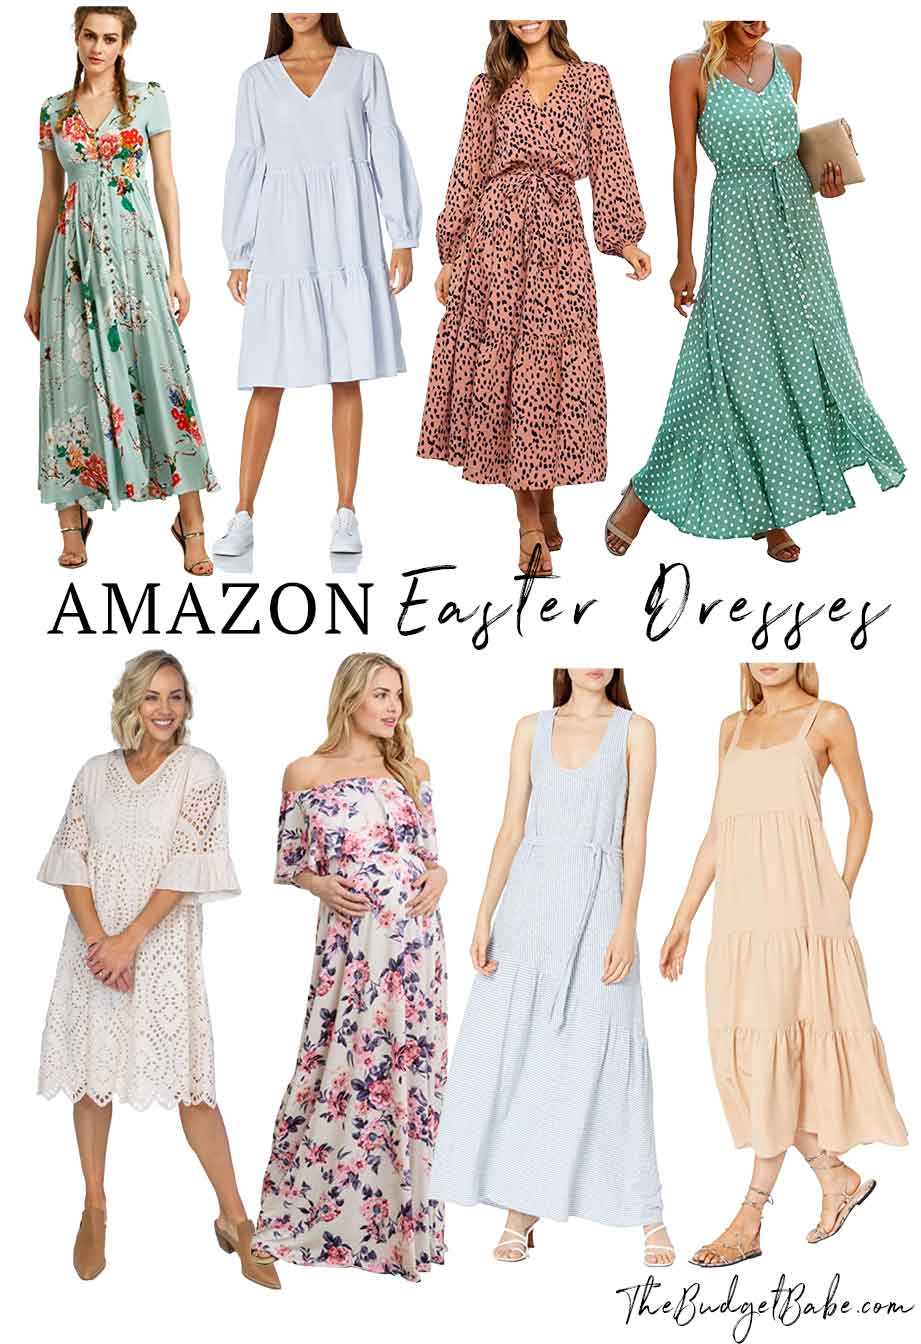 Amazon Easter Dresses for Spring Occasions